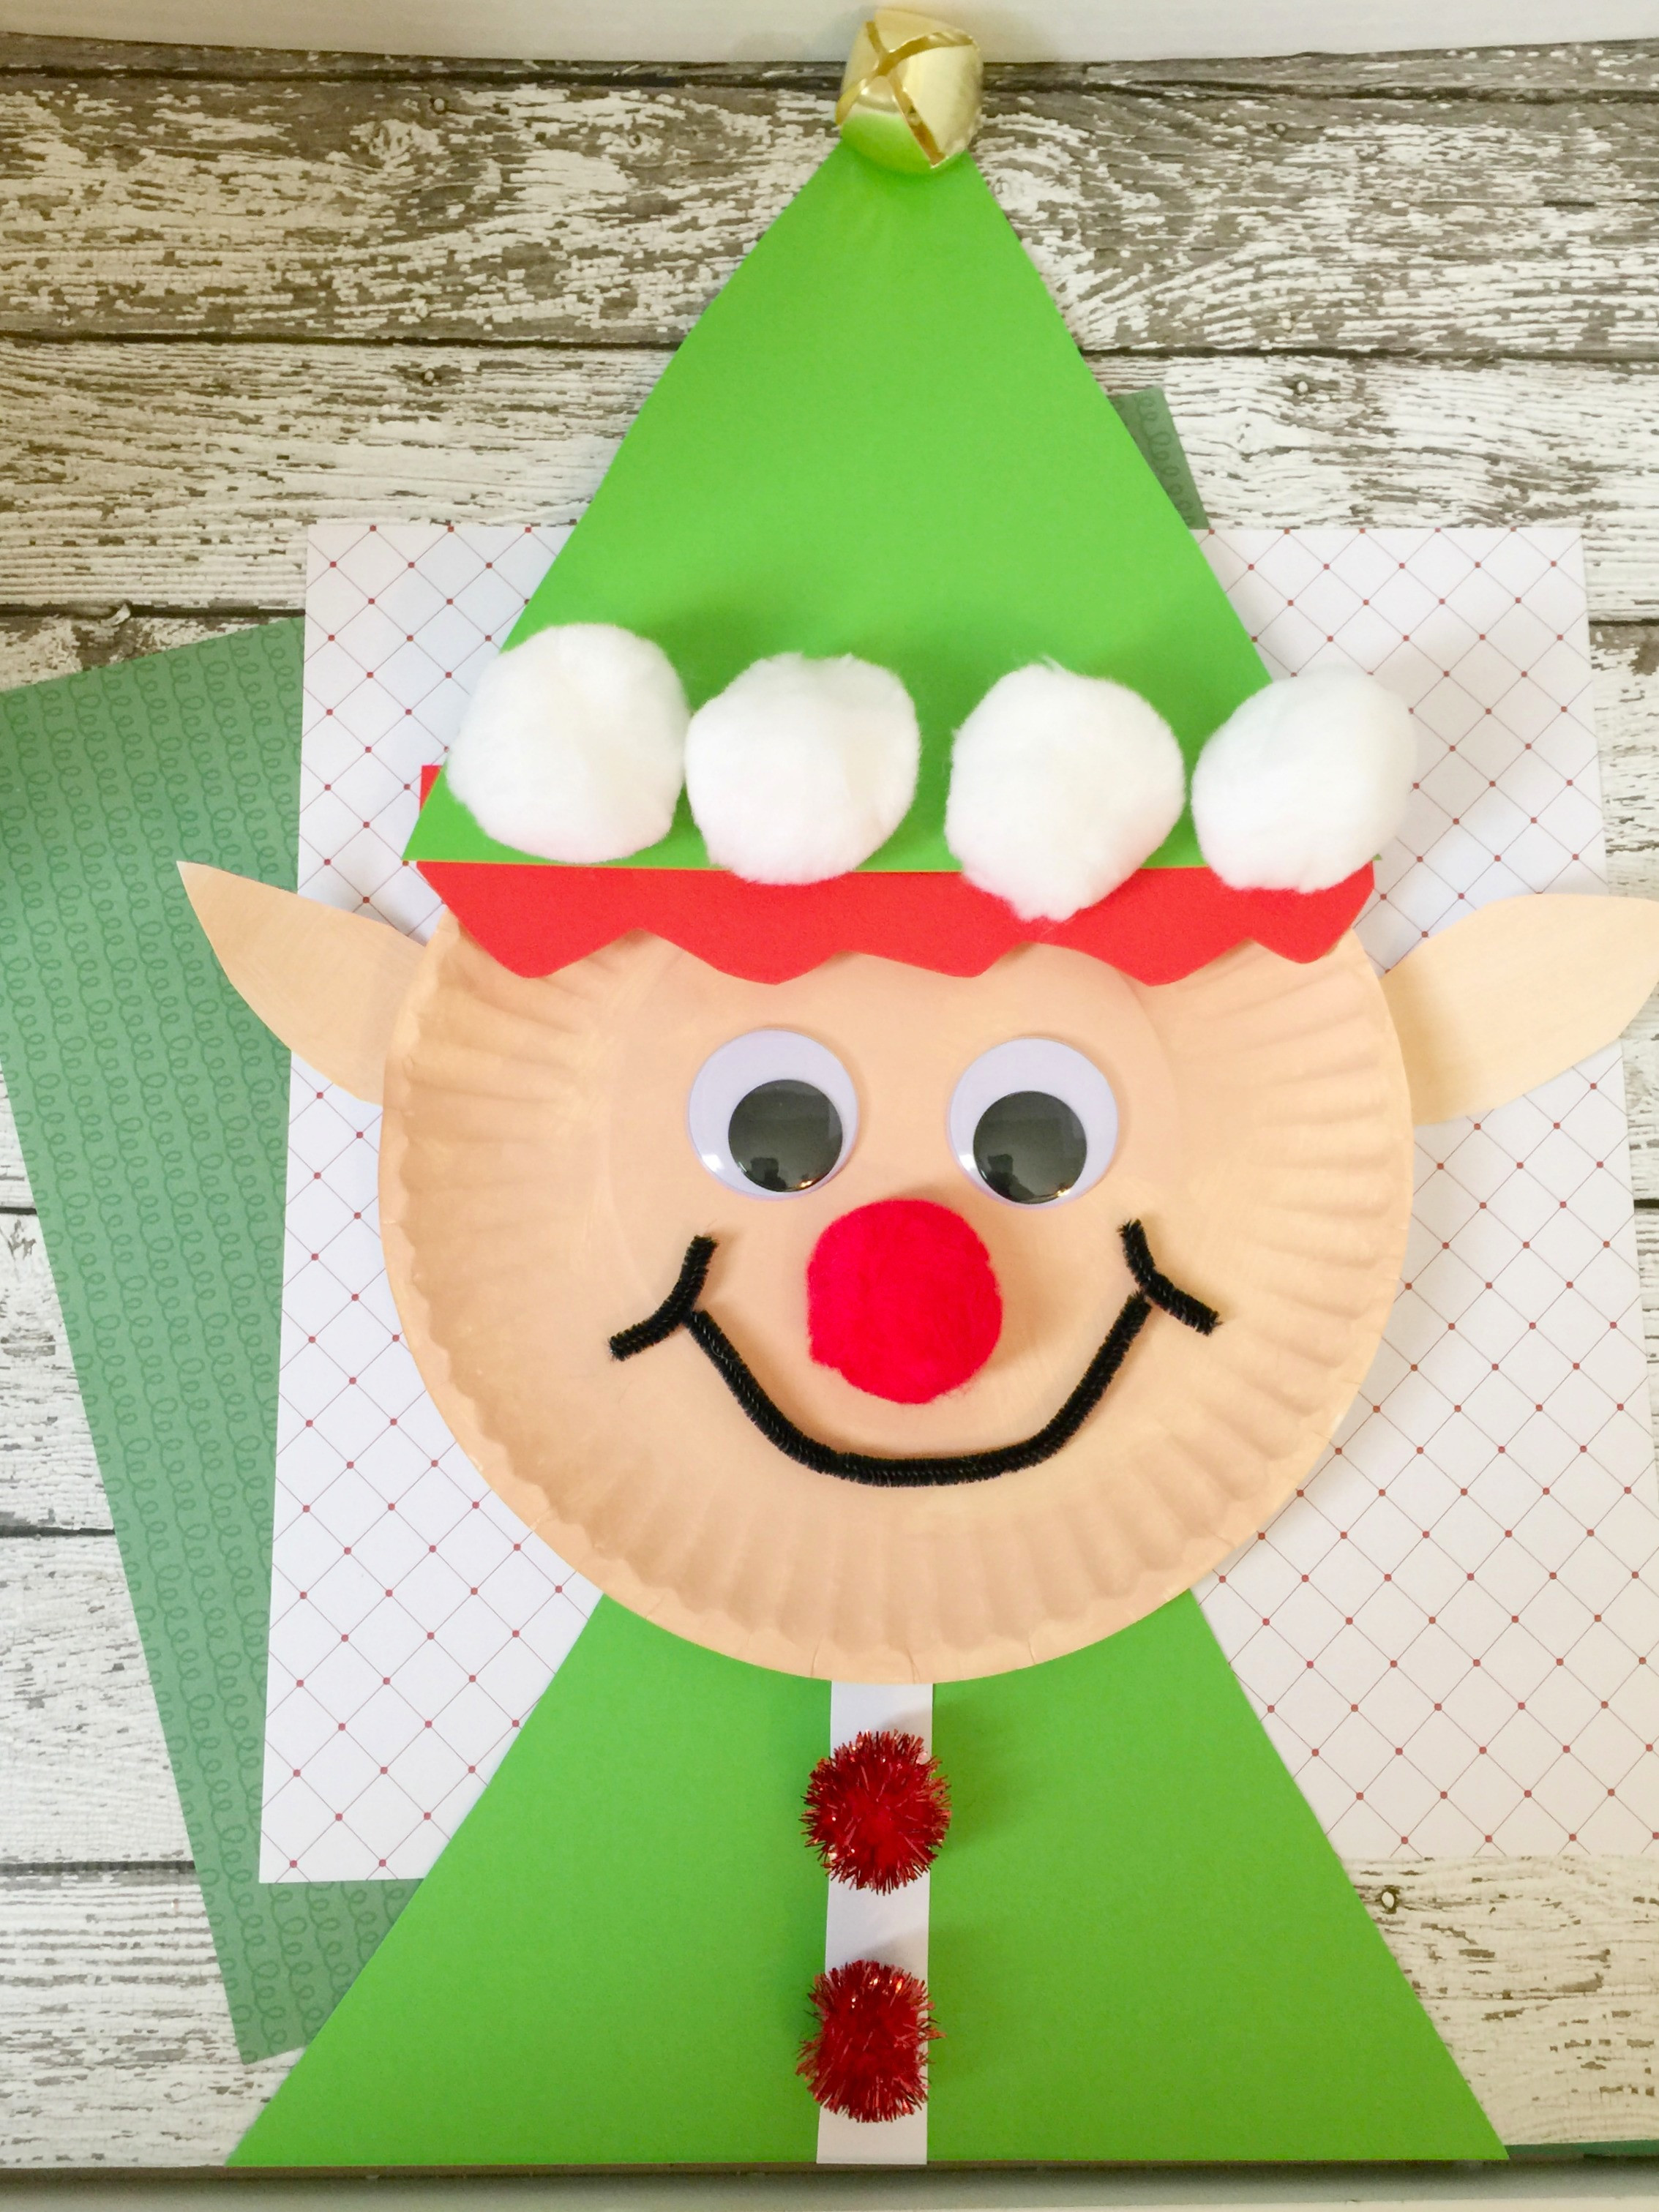 Christmas Paper Crafts Awesome Christmas Elf Paper Plate Craft for Kids Of Adorable 49 Pictures Christmas Paper Crafts